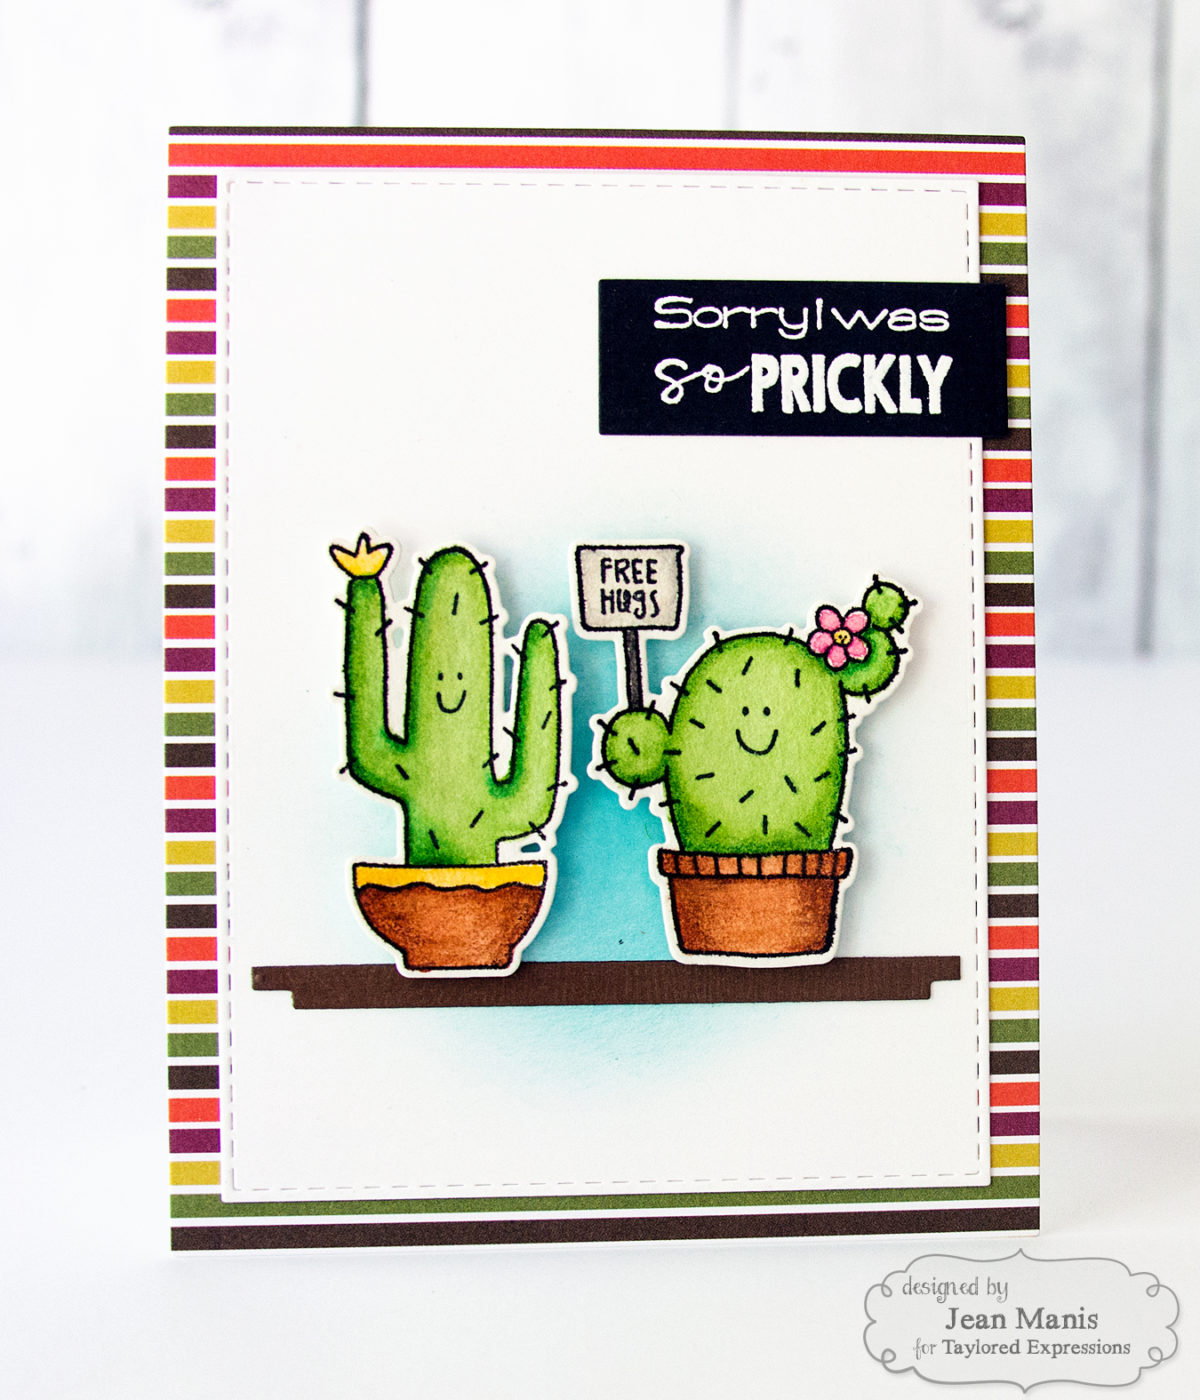 Taylored Expressions – Cactus Apology Card